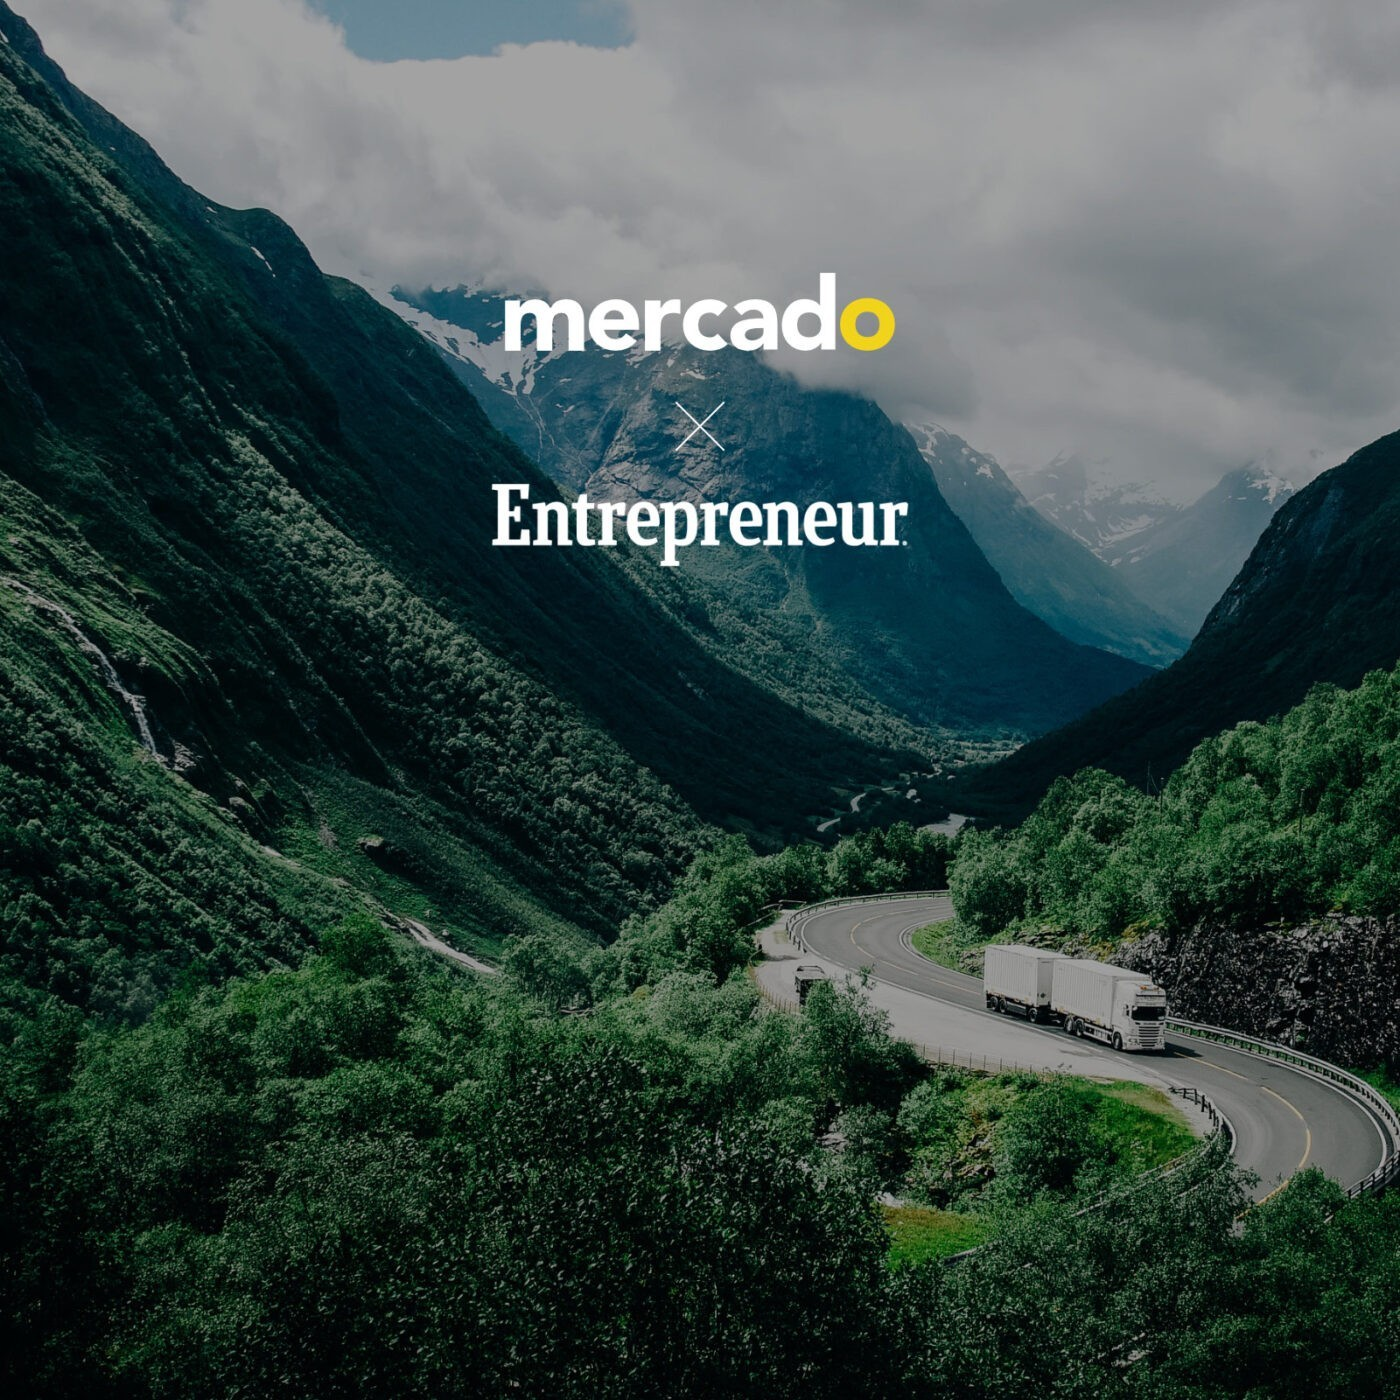 Mercado | Article - Entrepreneur - Why Digitizing the First Mile Is the Next Evolution for a Connected Supply Chain